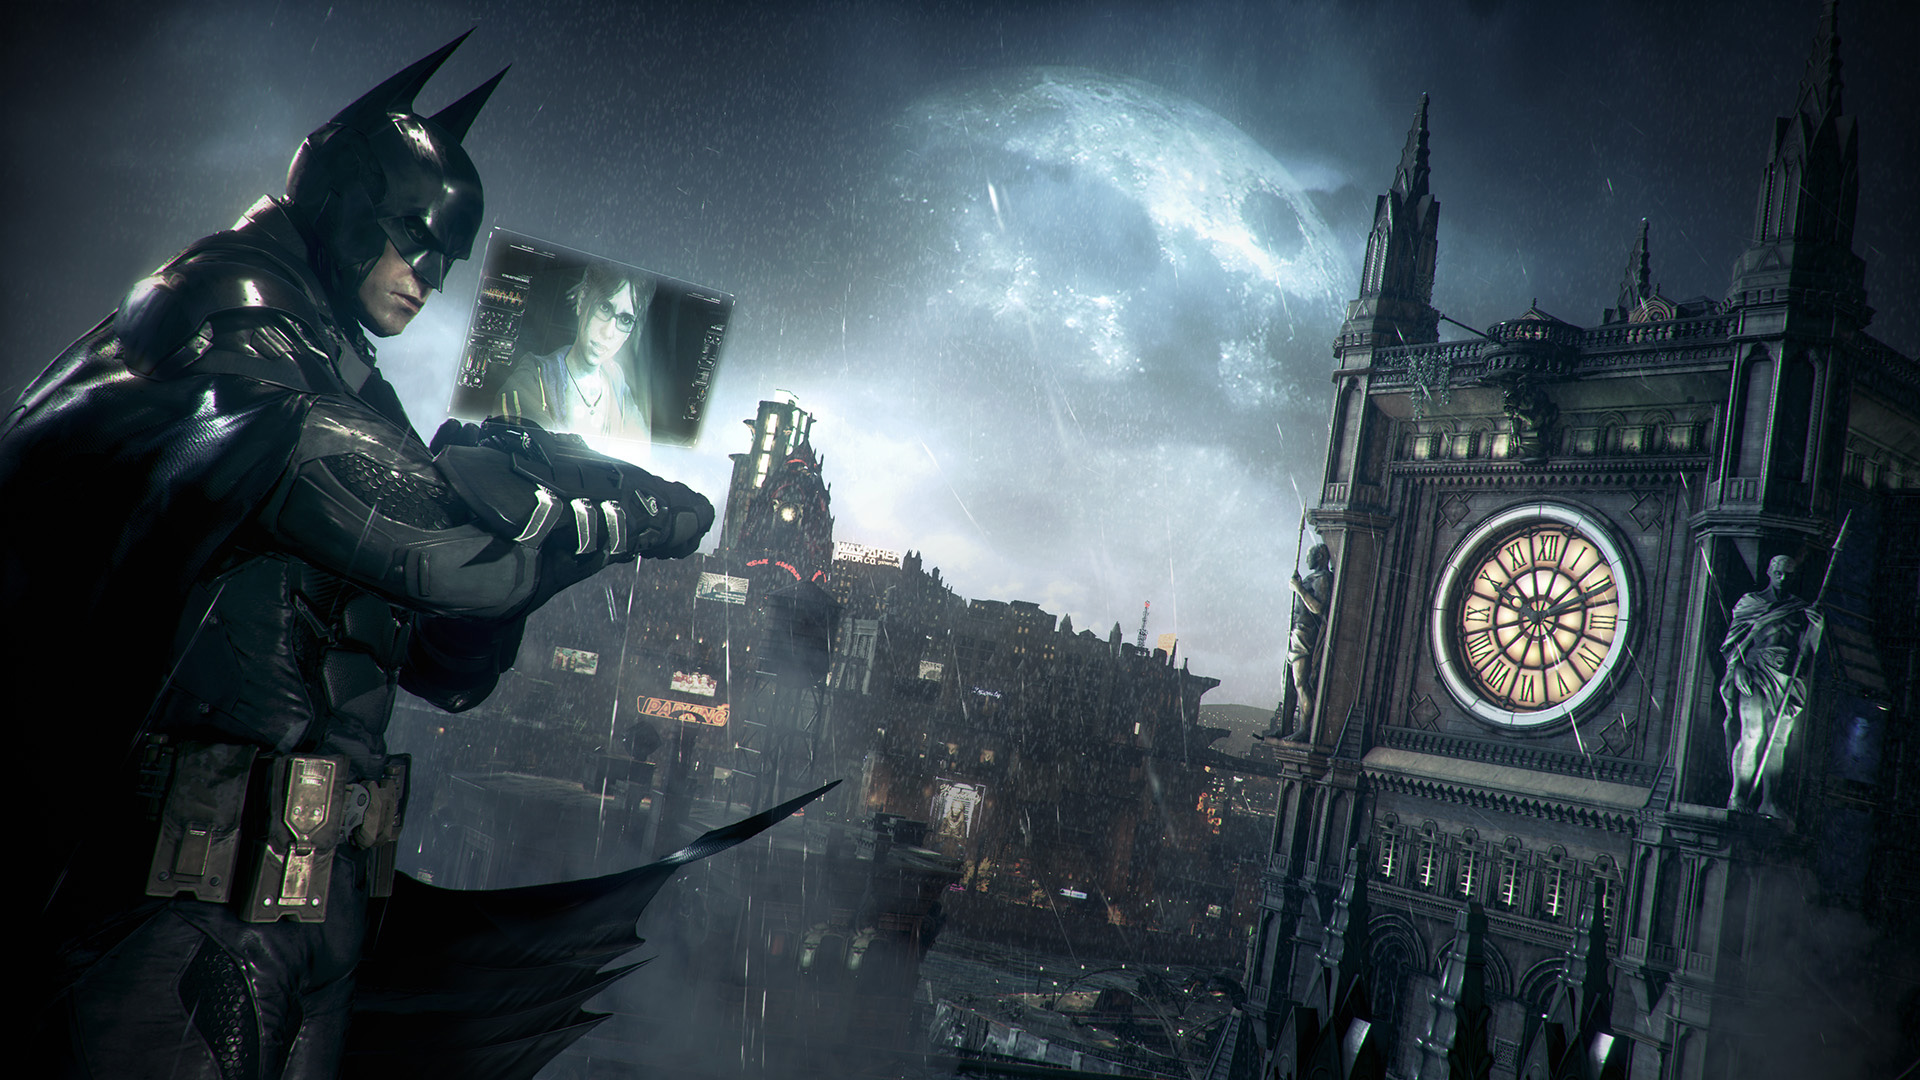 ESRB explains why Arkham Knight is Batman's first M-rated game